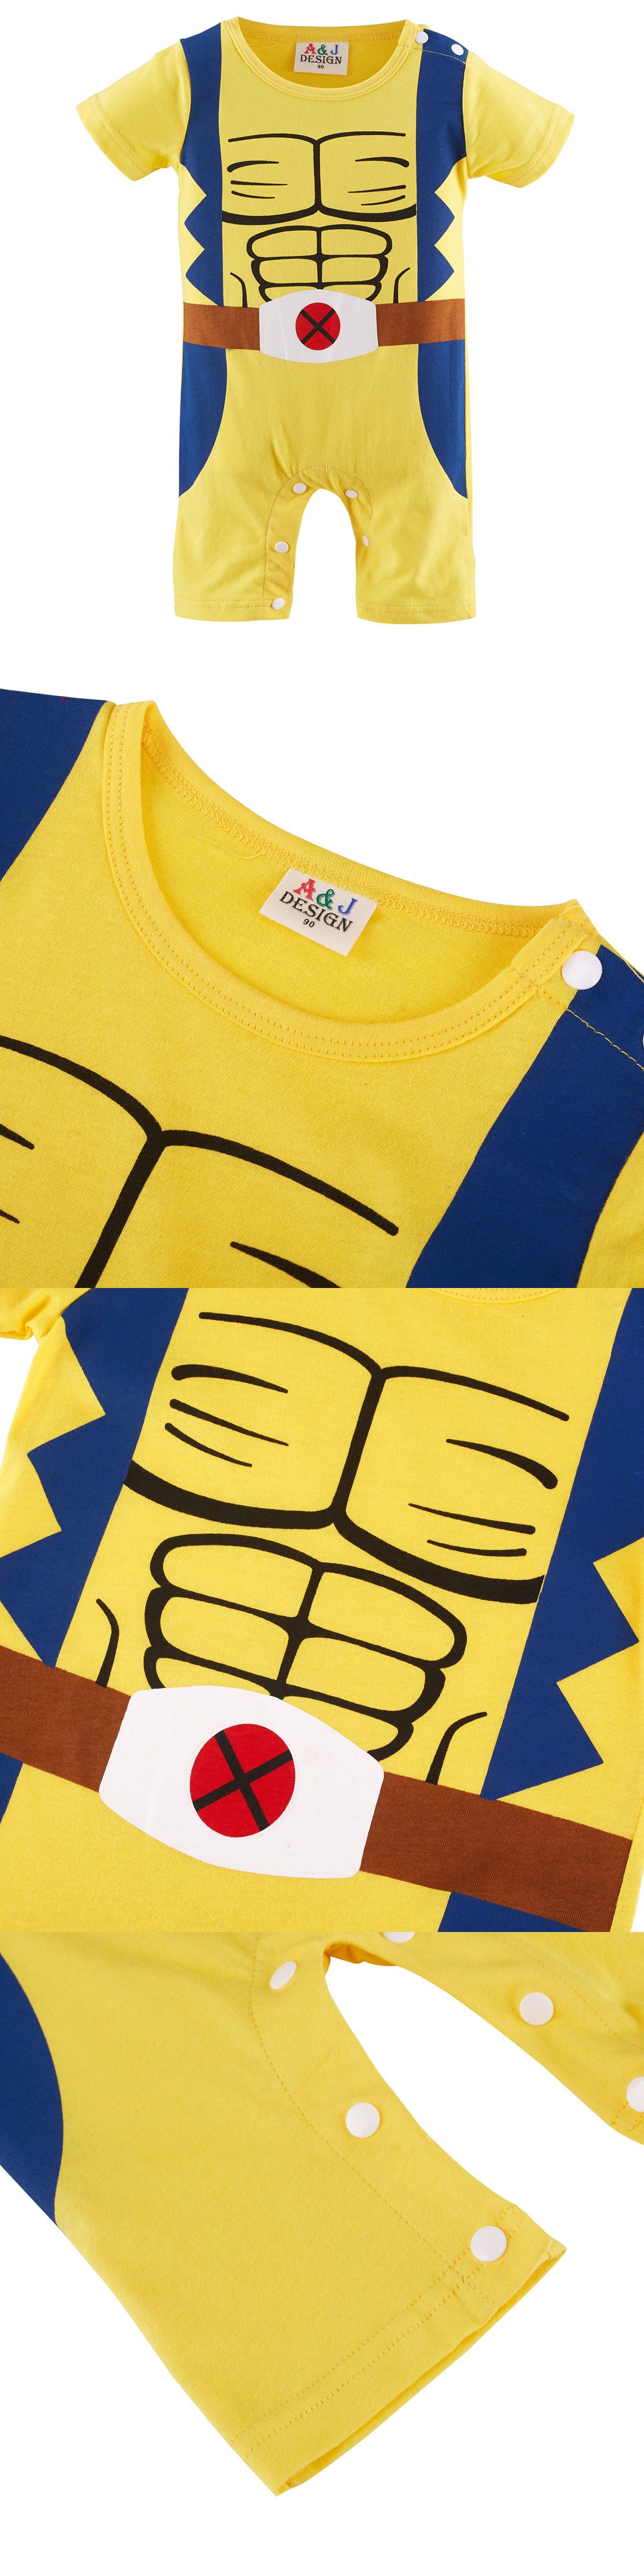 889fcc179de4 One-Pieces 57784  Baby Boy Wolverine Costume Romper Infant X-Men Playsuit  Newborn Outfits Gift -  BUY IT NOW ONLY   15.58 on  eBay  wolverine  costume  ...